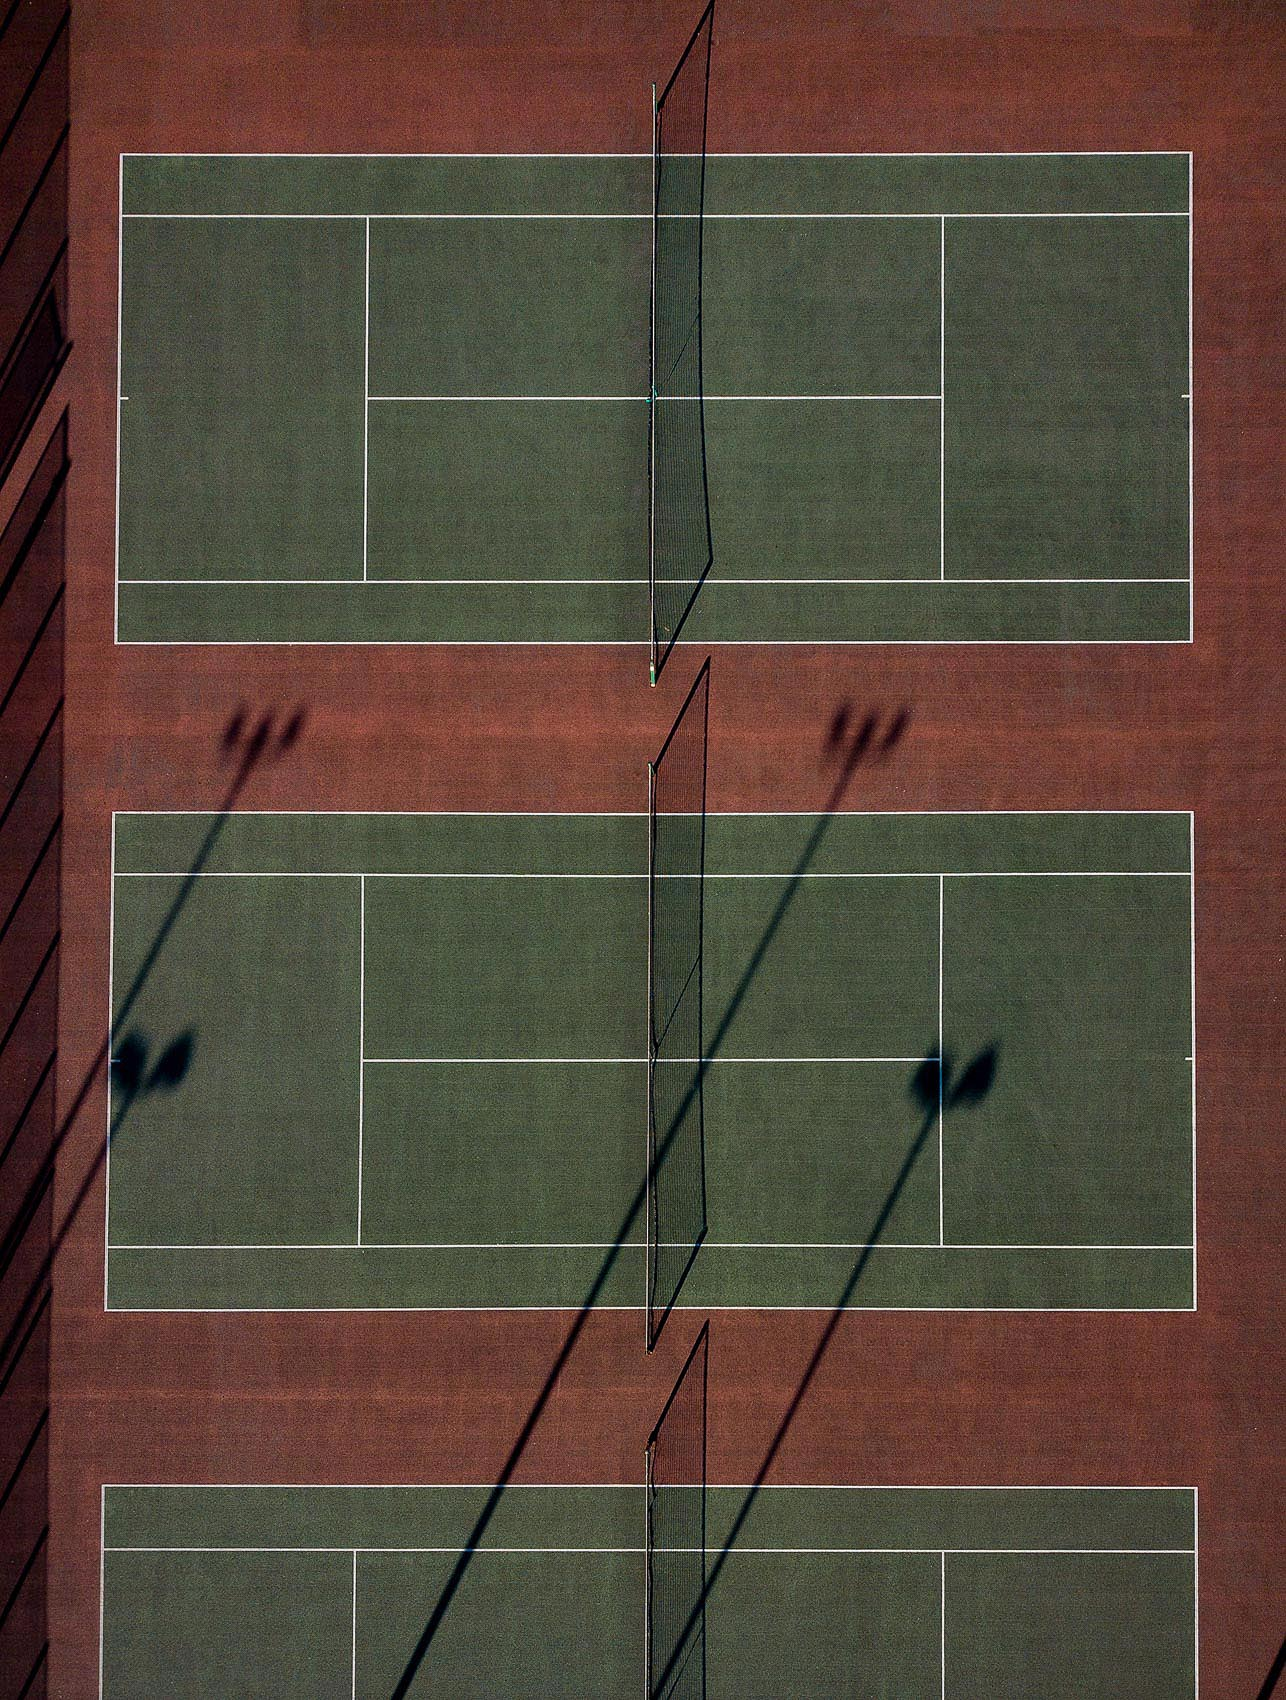 graphic-tennis-courts-aerial-overhead-london